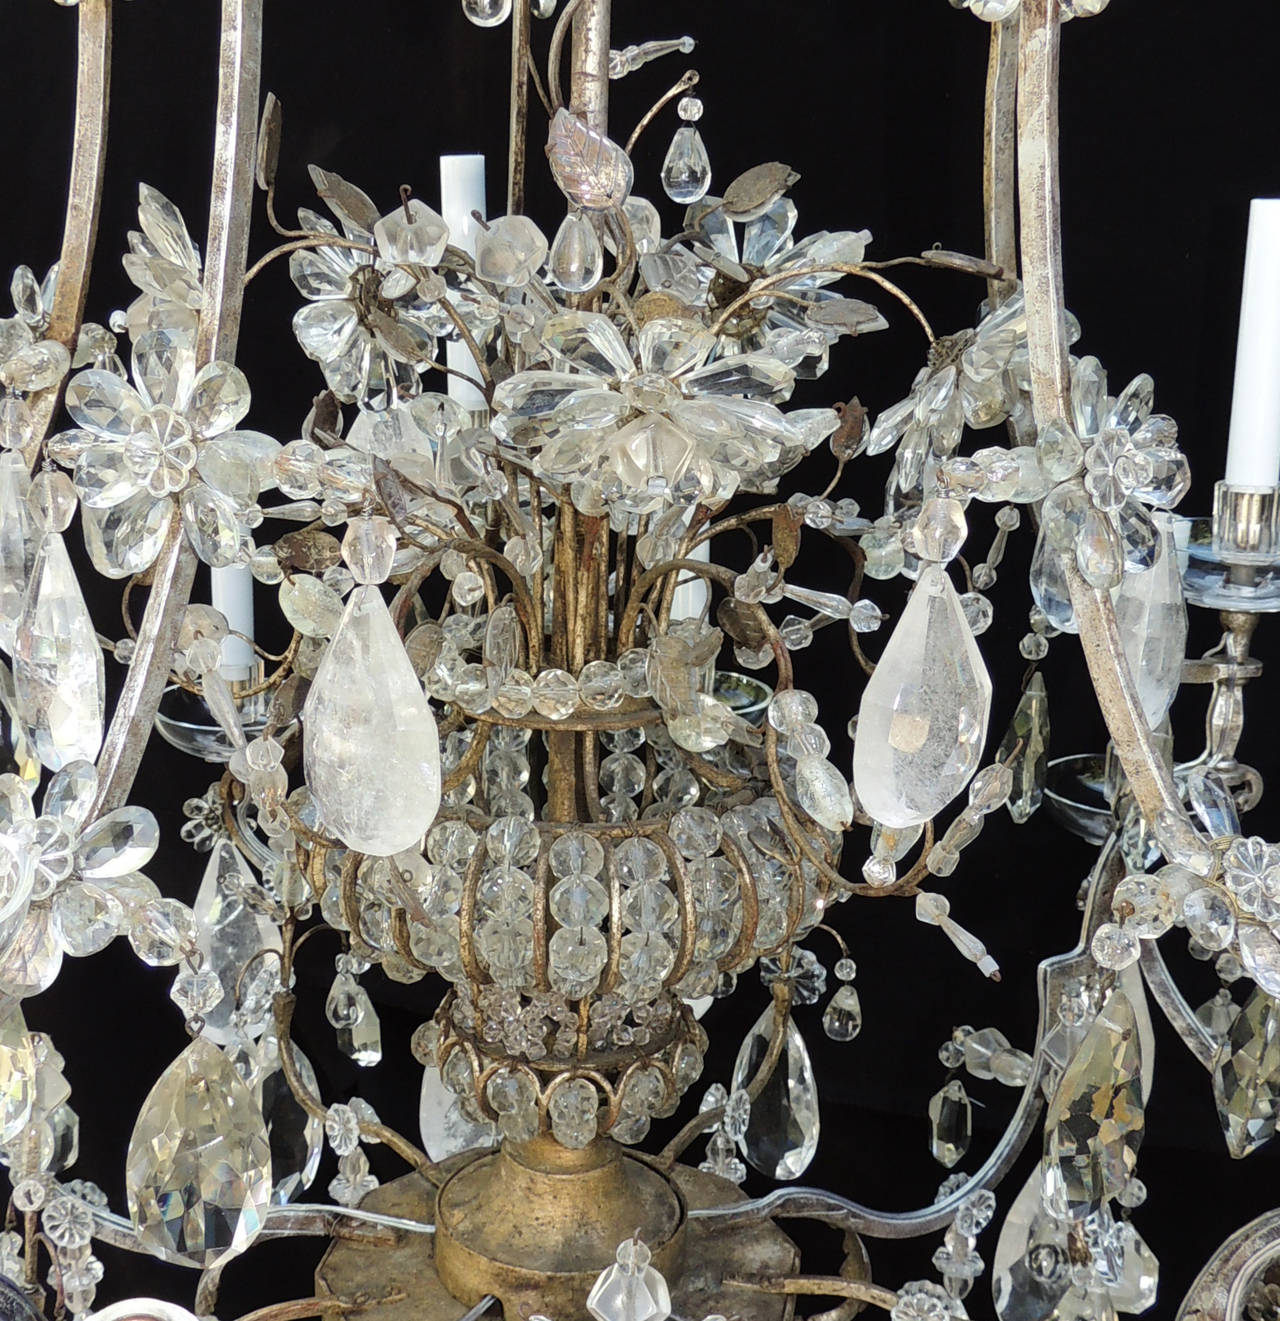 Incredible Maison Baguès Silver Rock Crystal Floral Centre Chandelier Fixture In Good Condition For Sale In Roslyn, NY